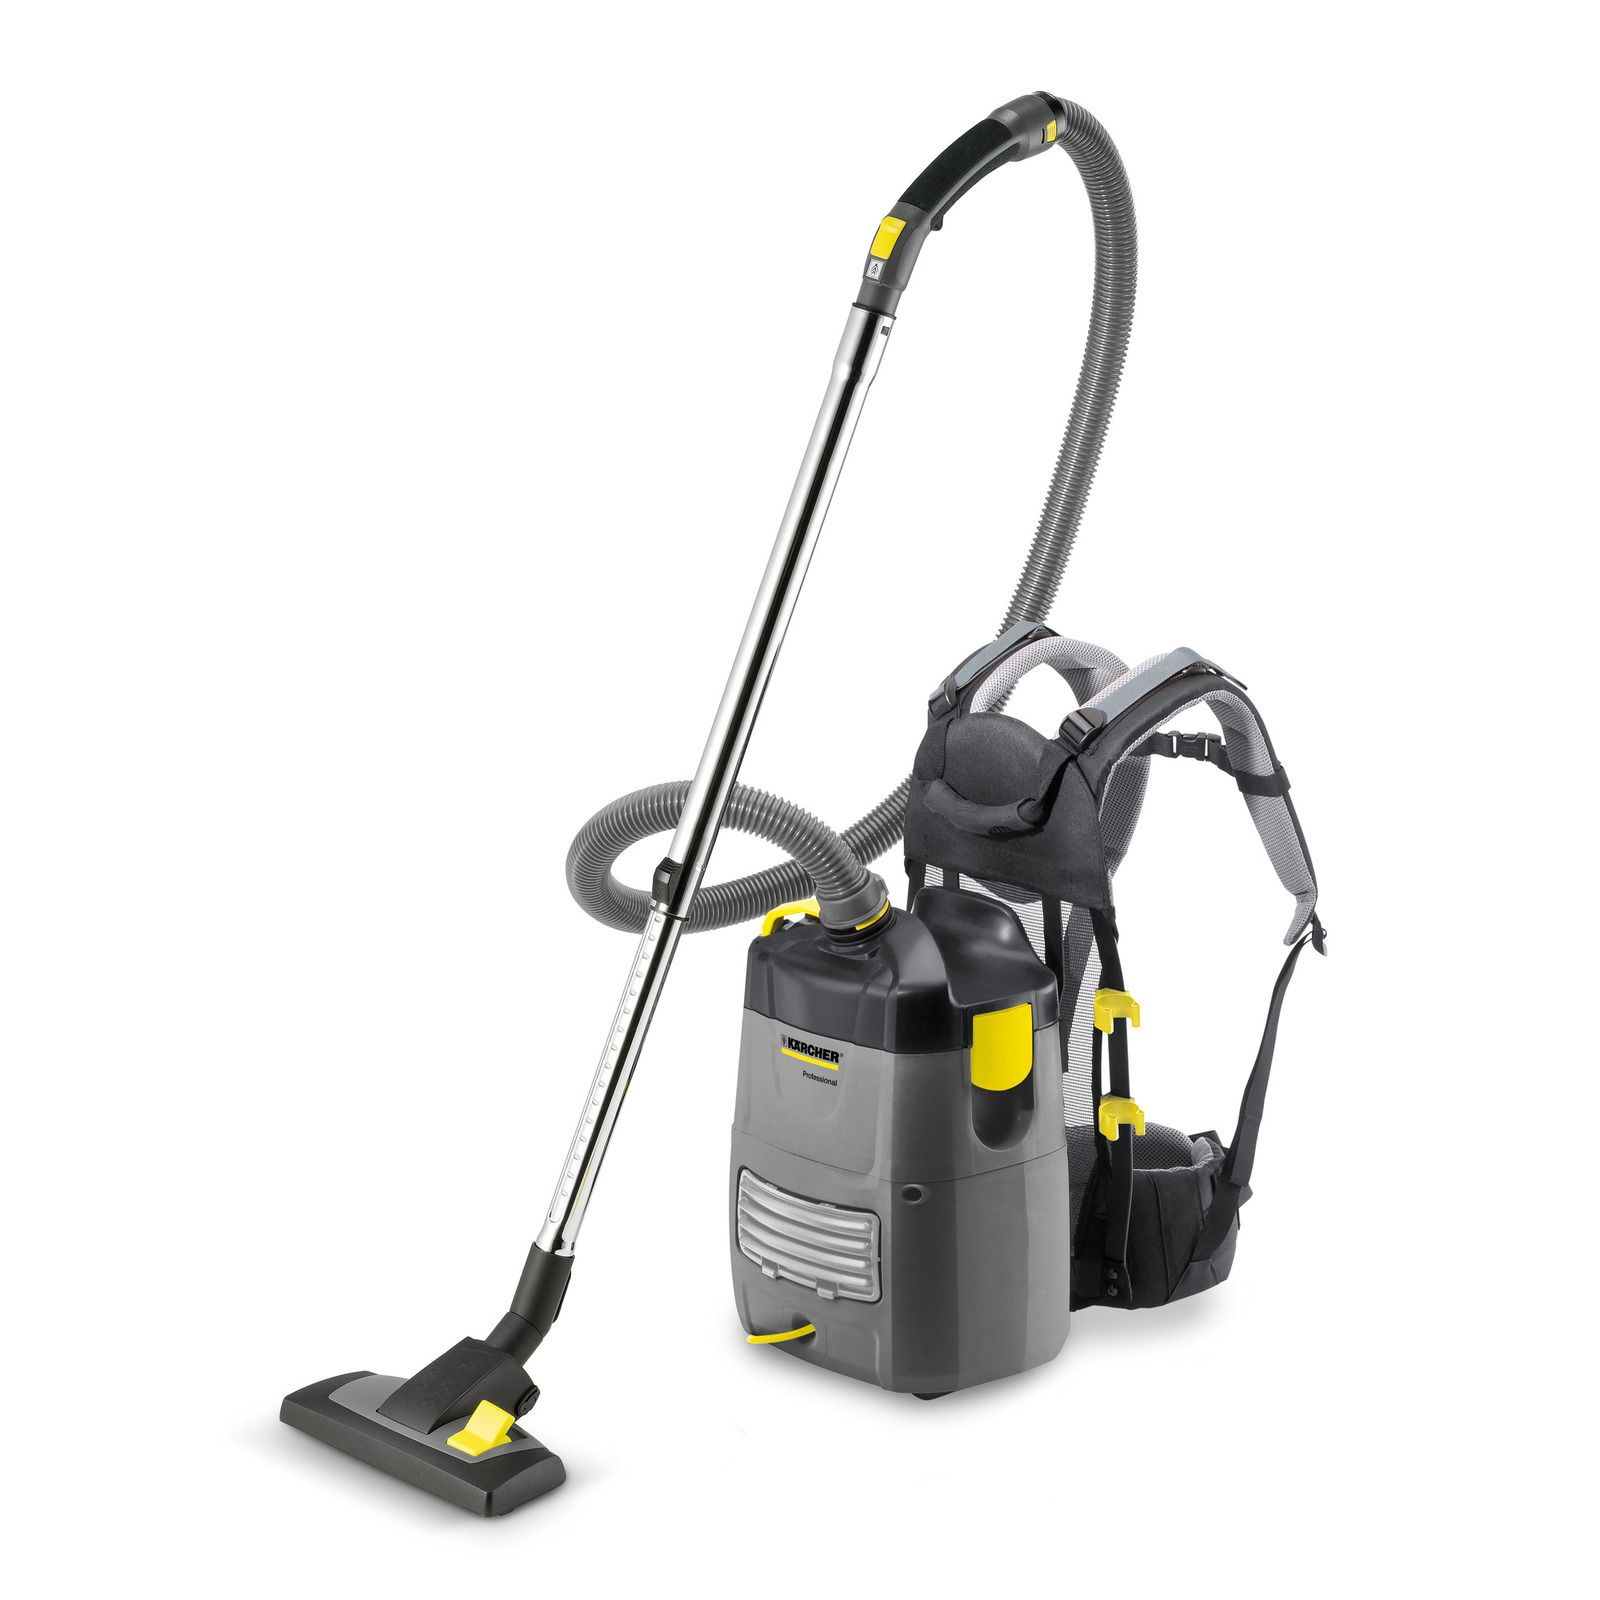 KARCHER 1.394-200.0 - BV 5/1 Dry Vacuum Cleaner